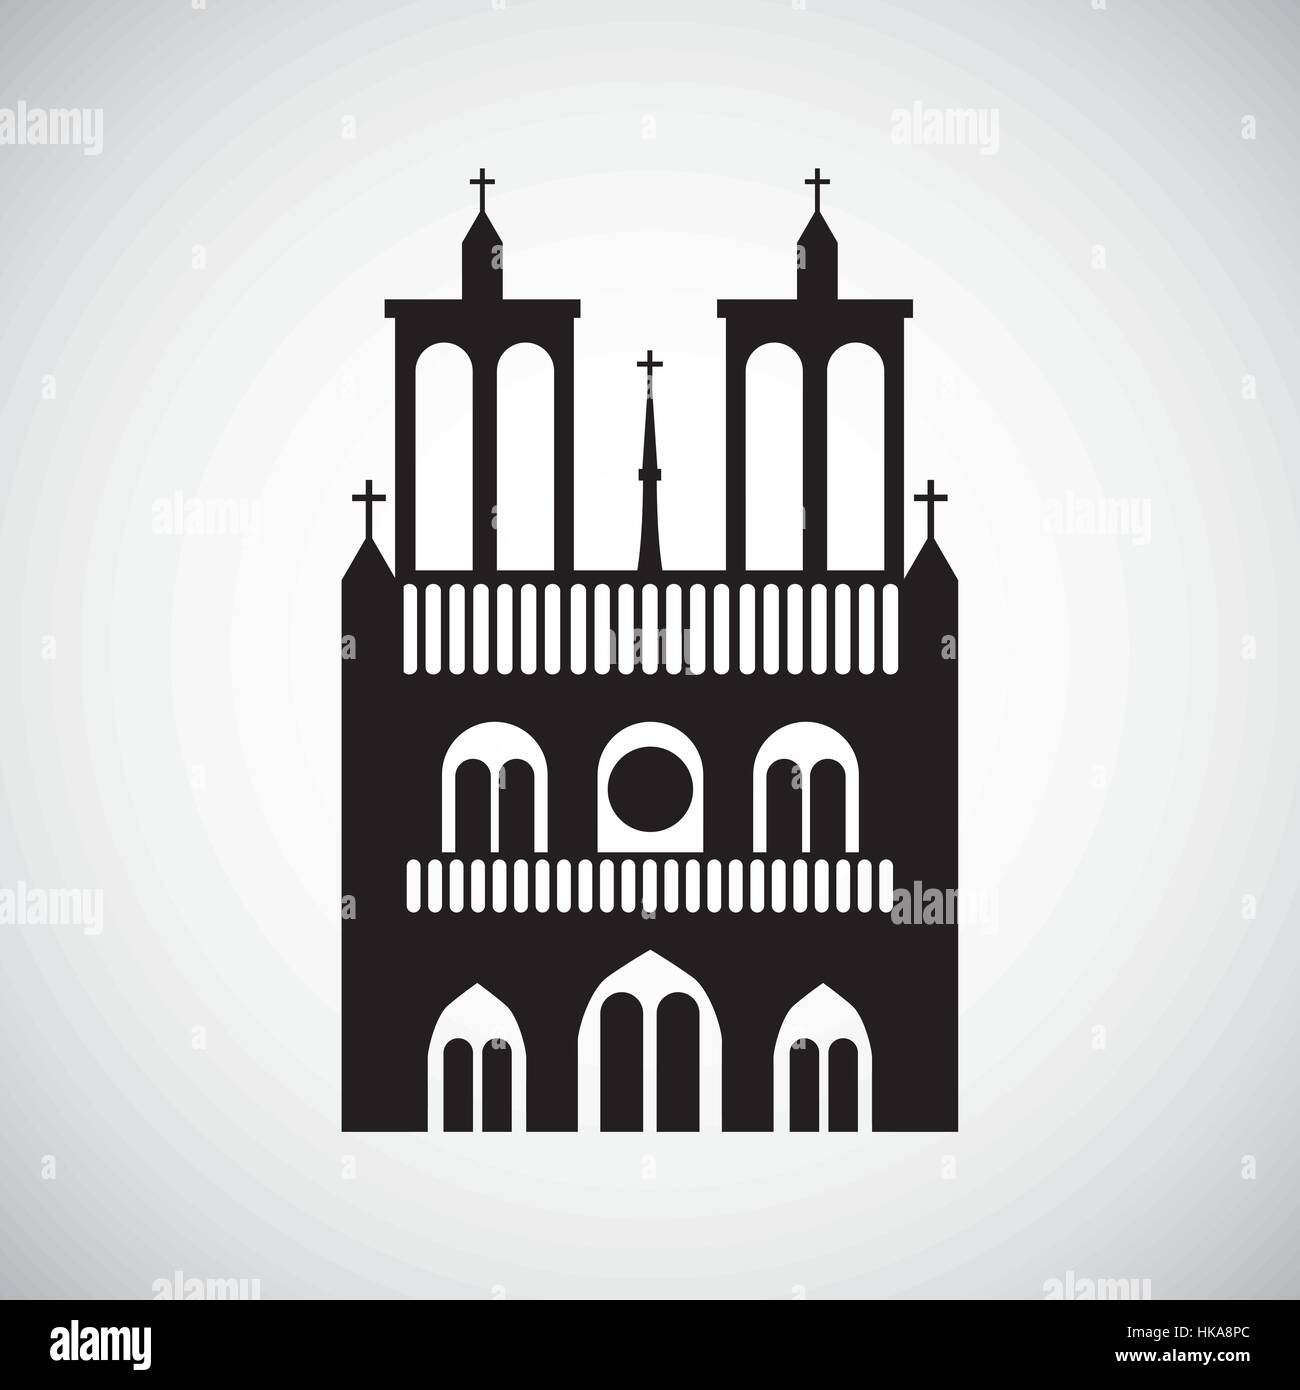 notre dame icon over white background. travel and tourism design. vector illustration - Stock Vector